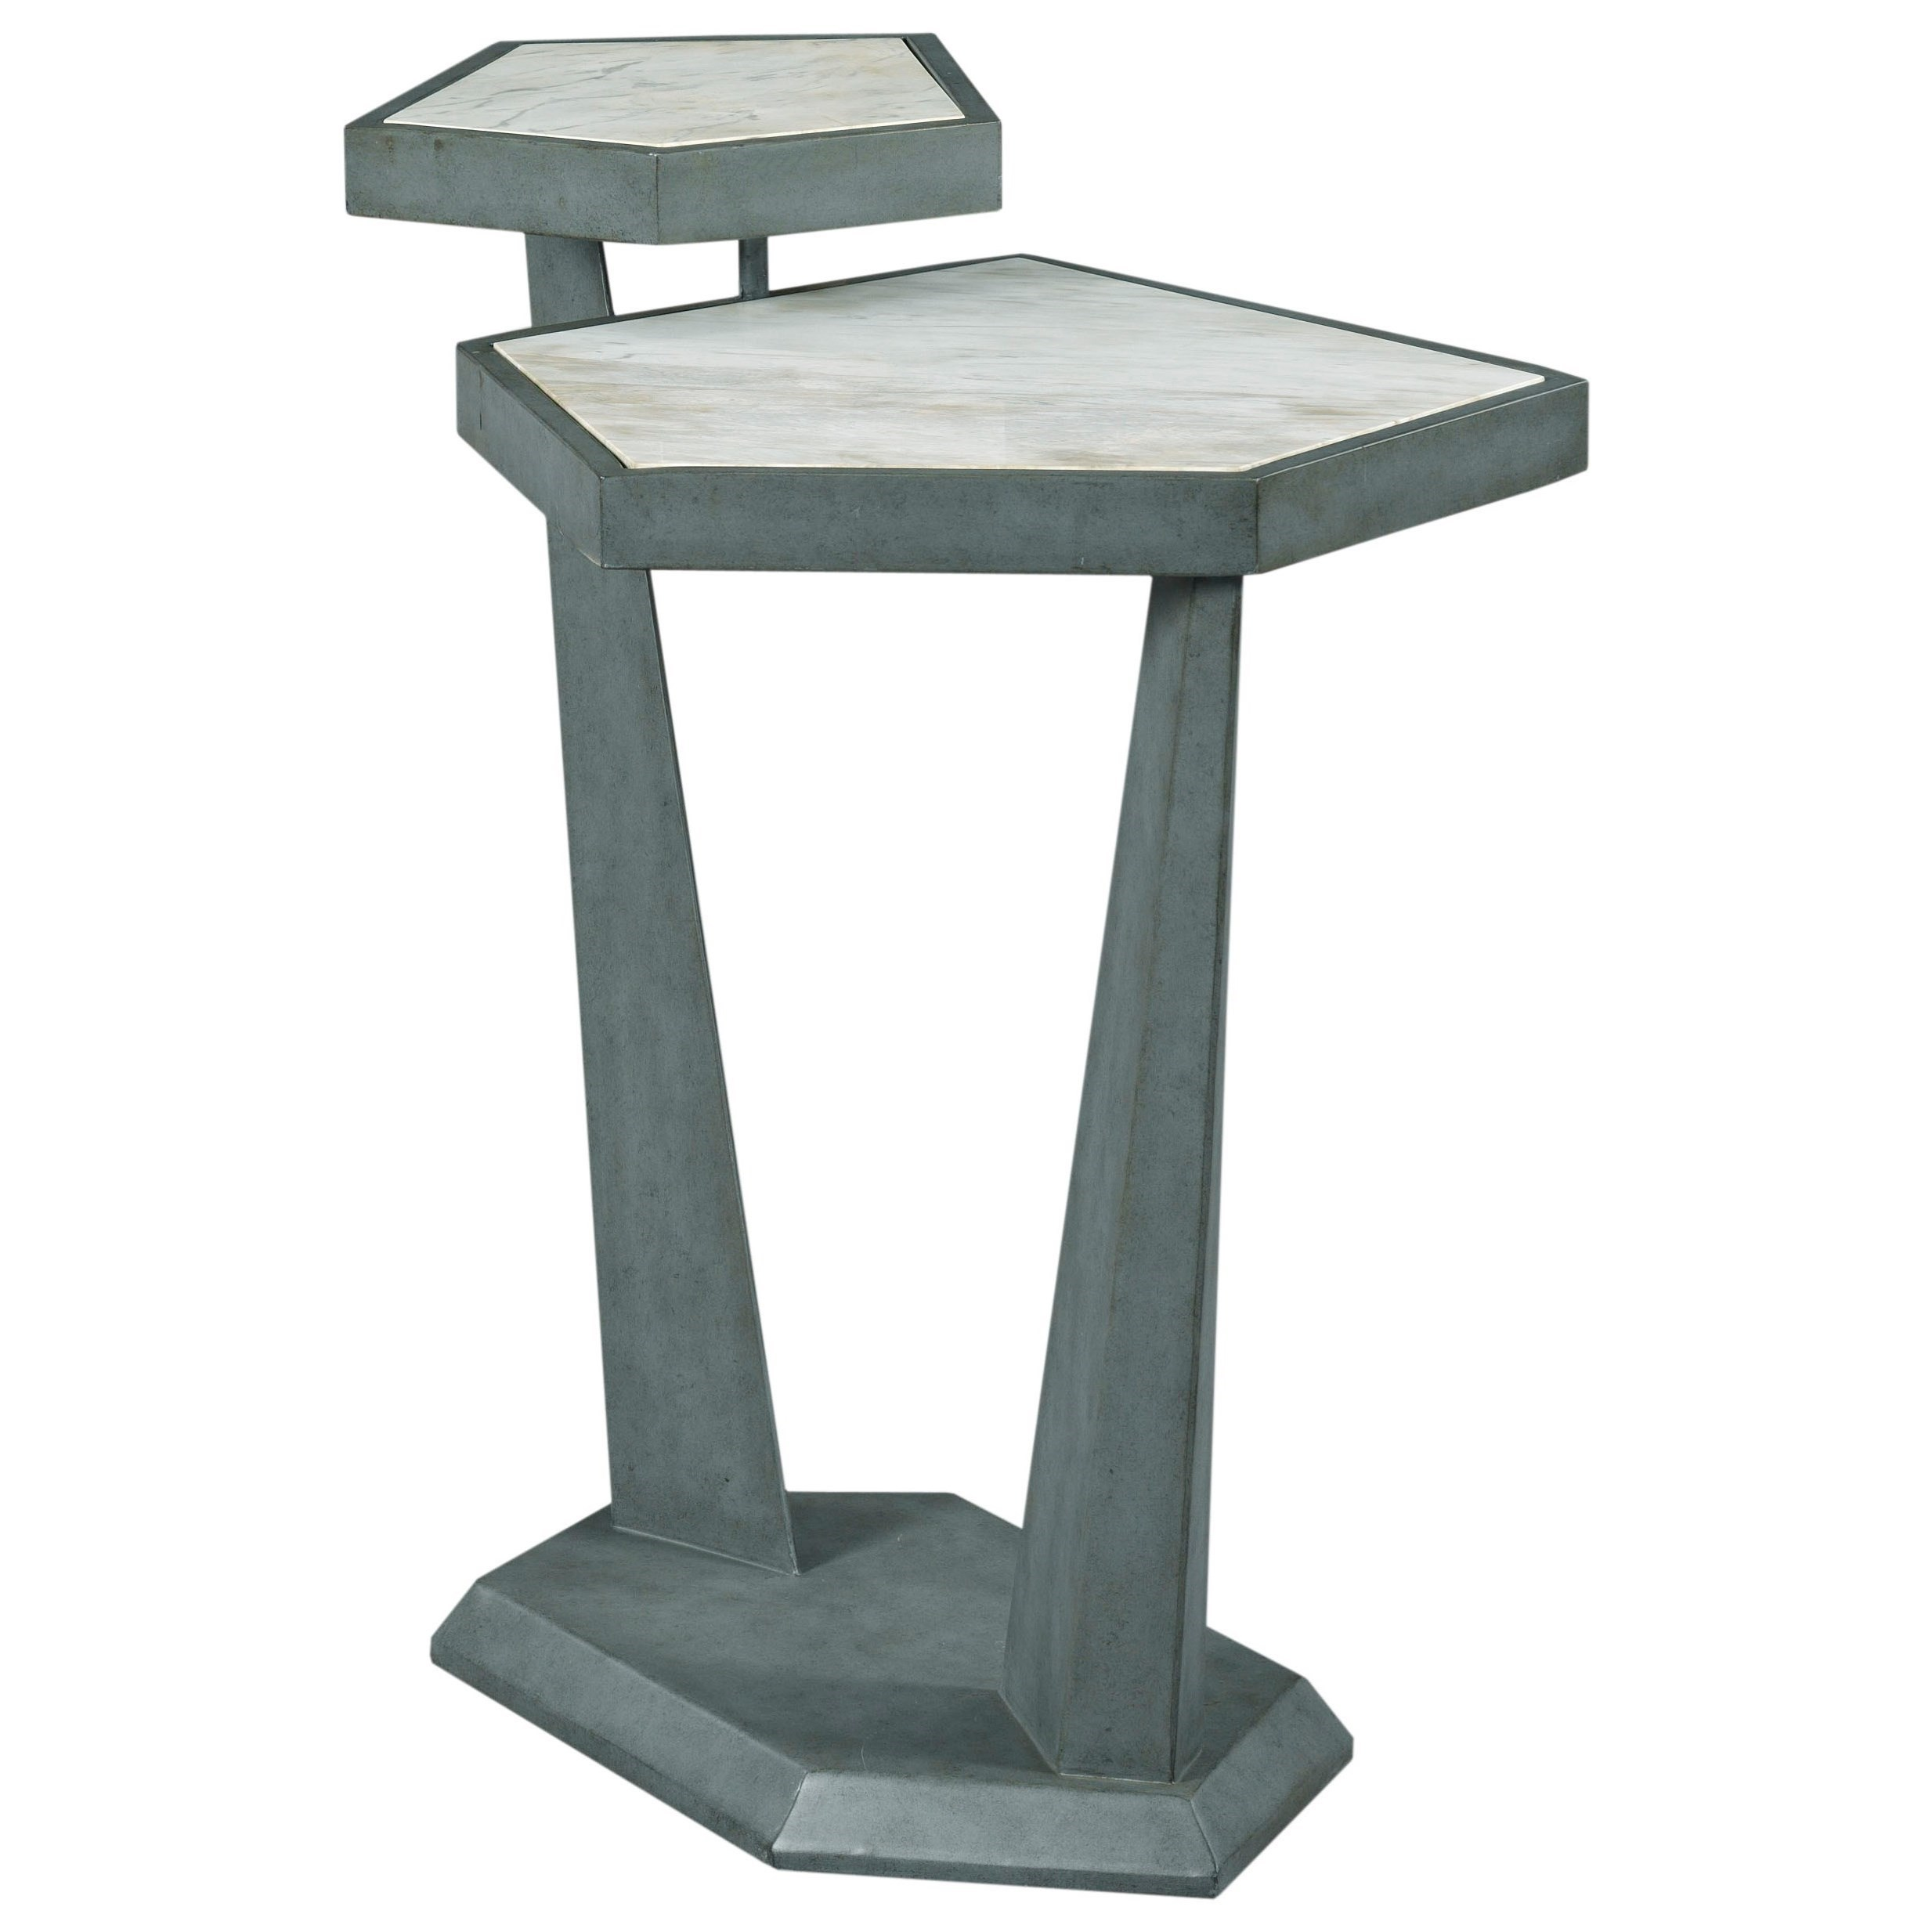 american drew modern synergy plane accent table northeast products color pedestal item number outdoor patio tables clearance large mosaic garden percussion box seat kitchen chair